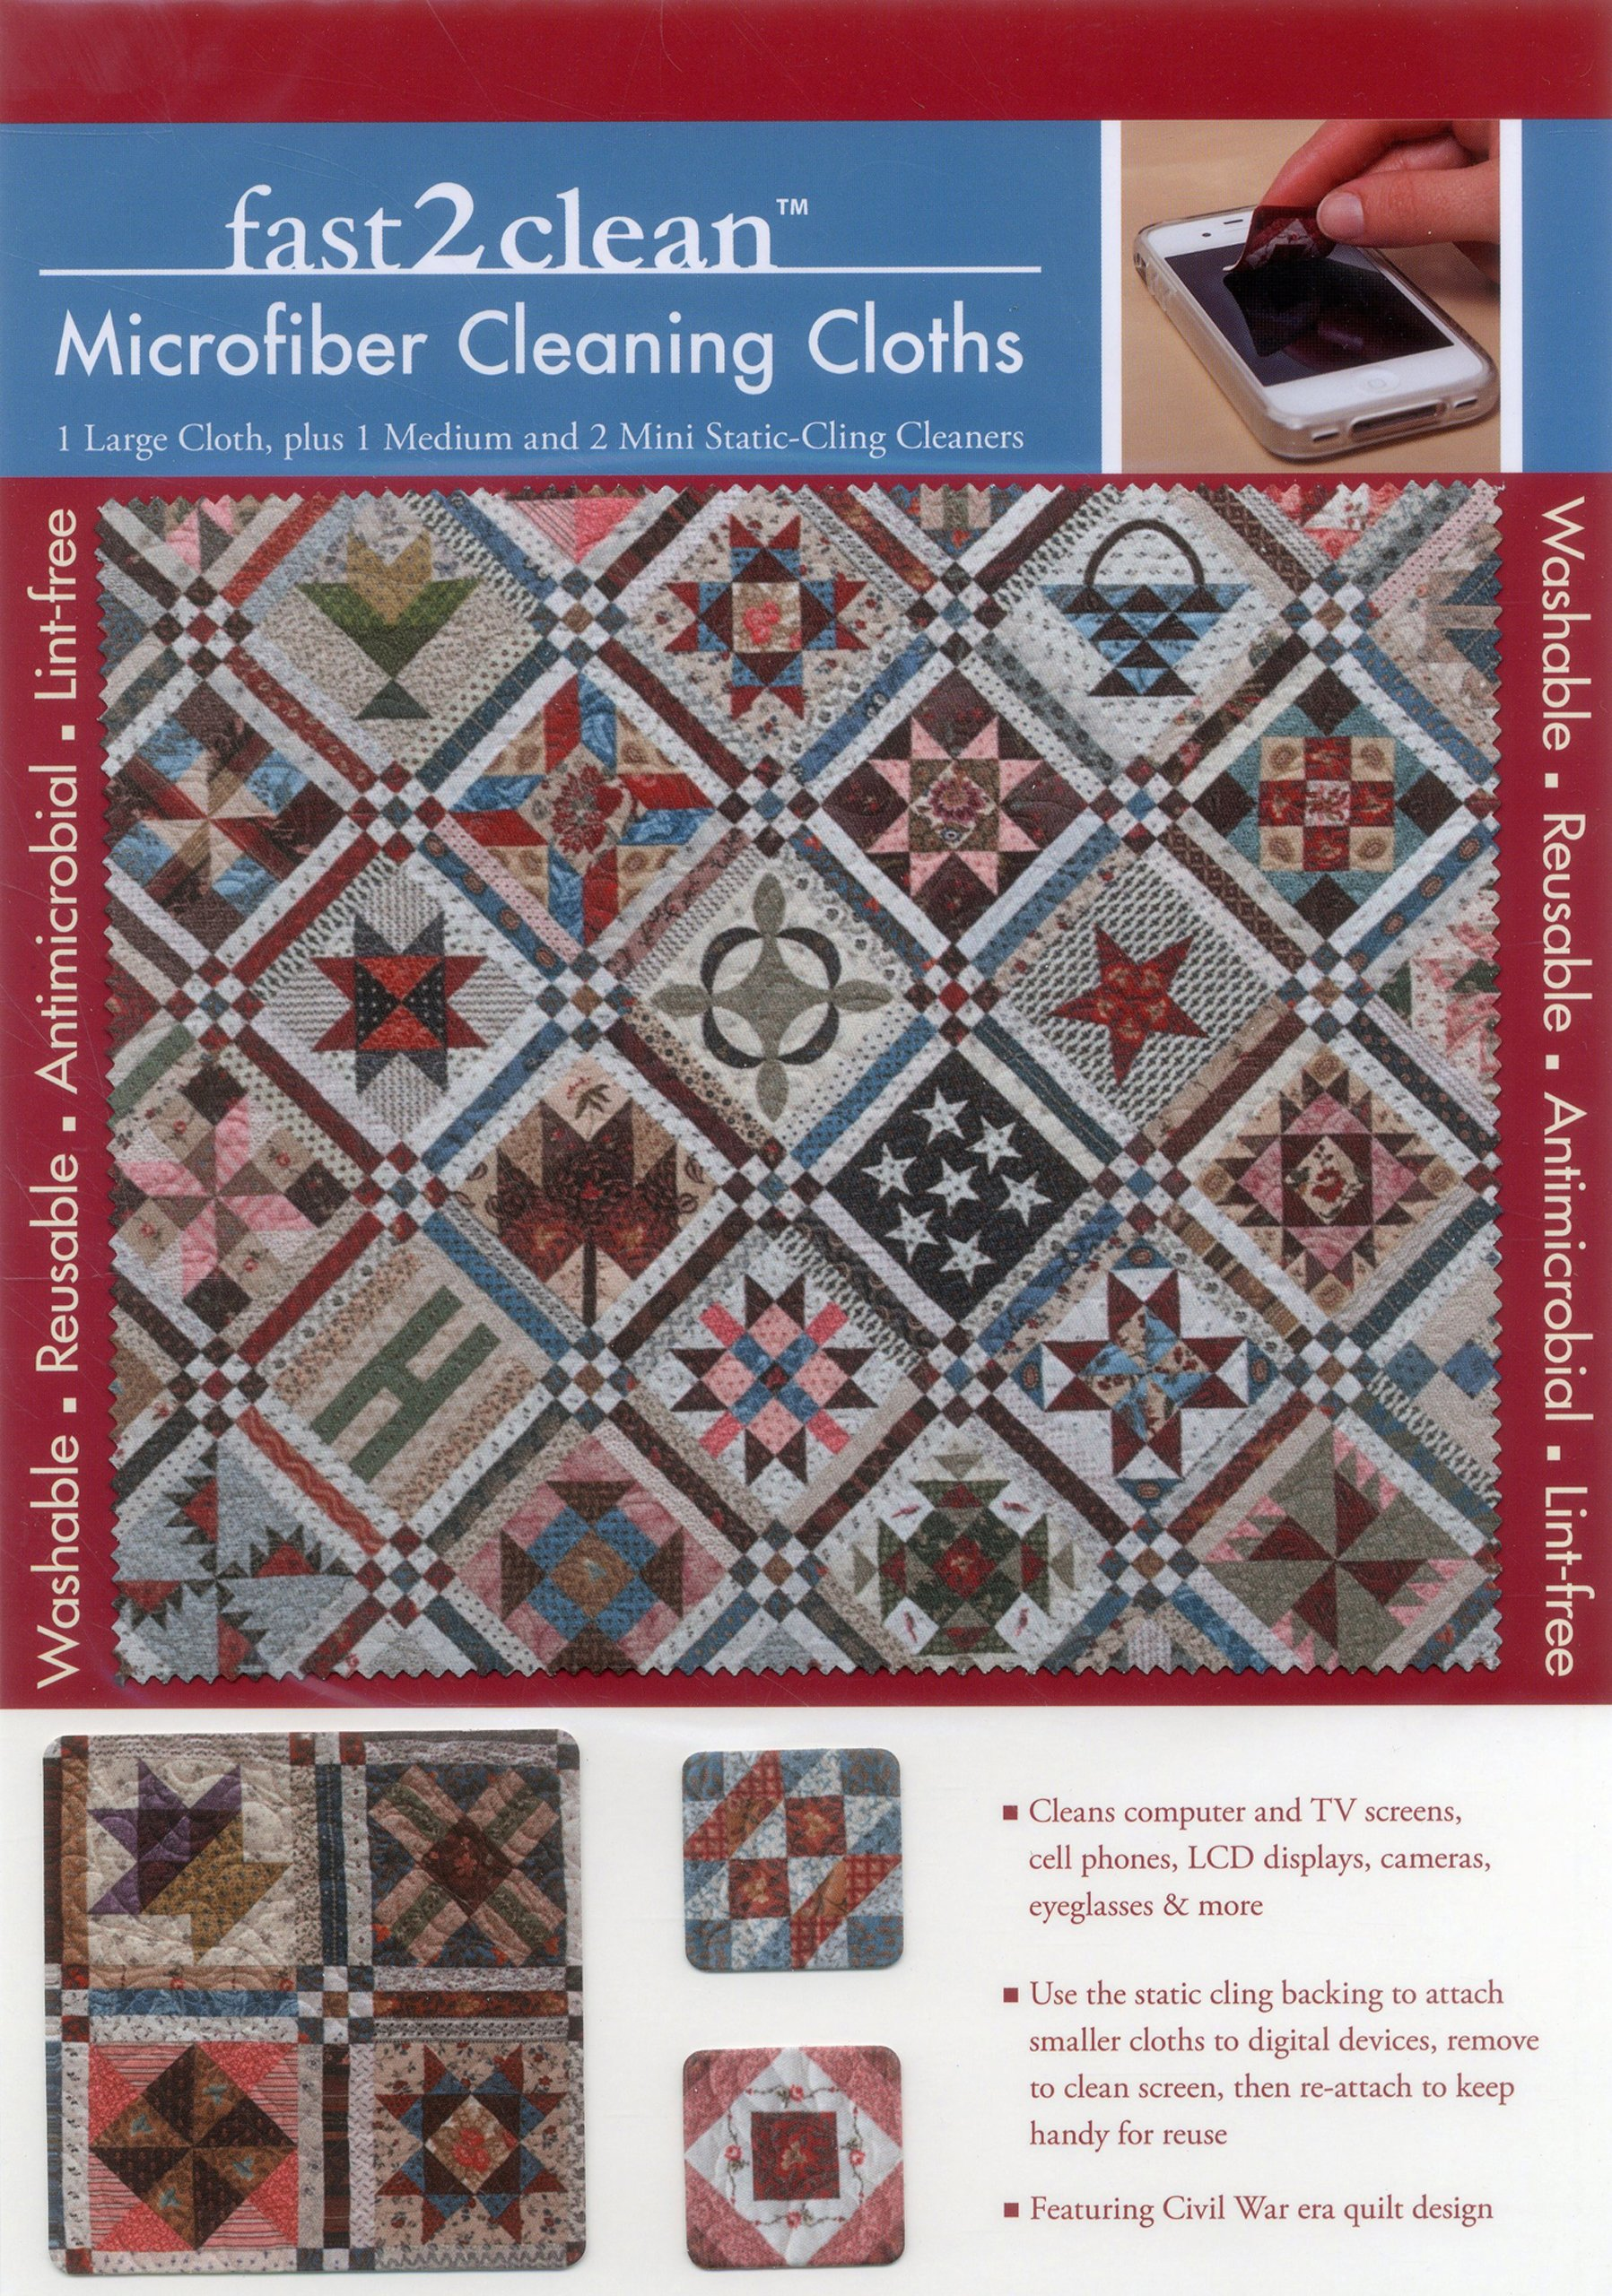 Download fast2clean Civil War Sampler Quilt Microfiber Cleaning Cloths: 1 Large Cloth, plus 1 Medium and 2 Mini Static-Cling Cleaners ebook